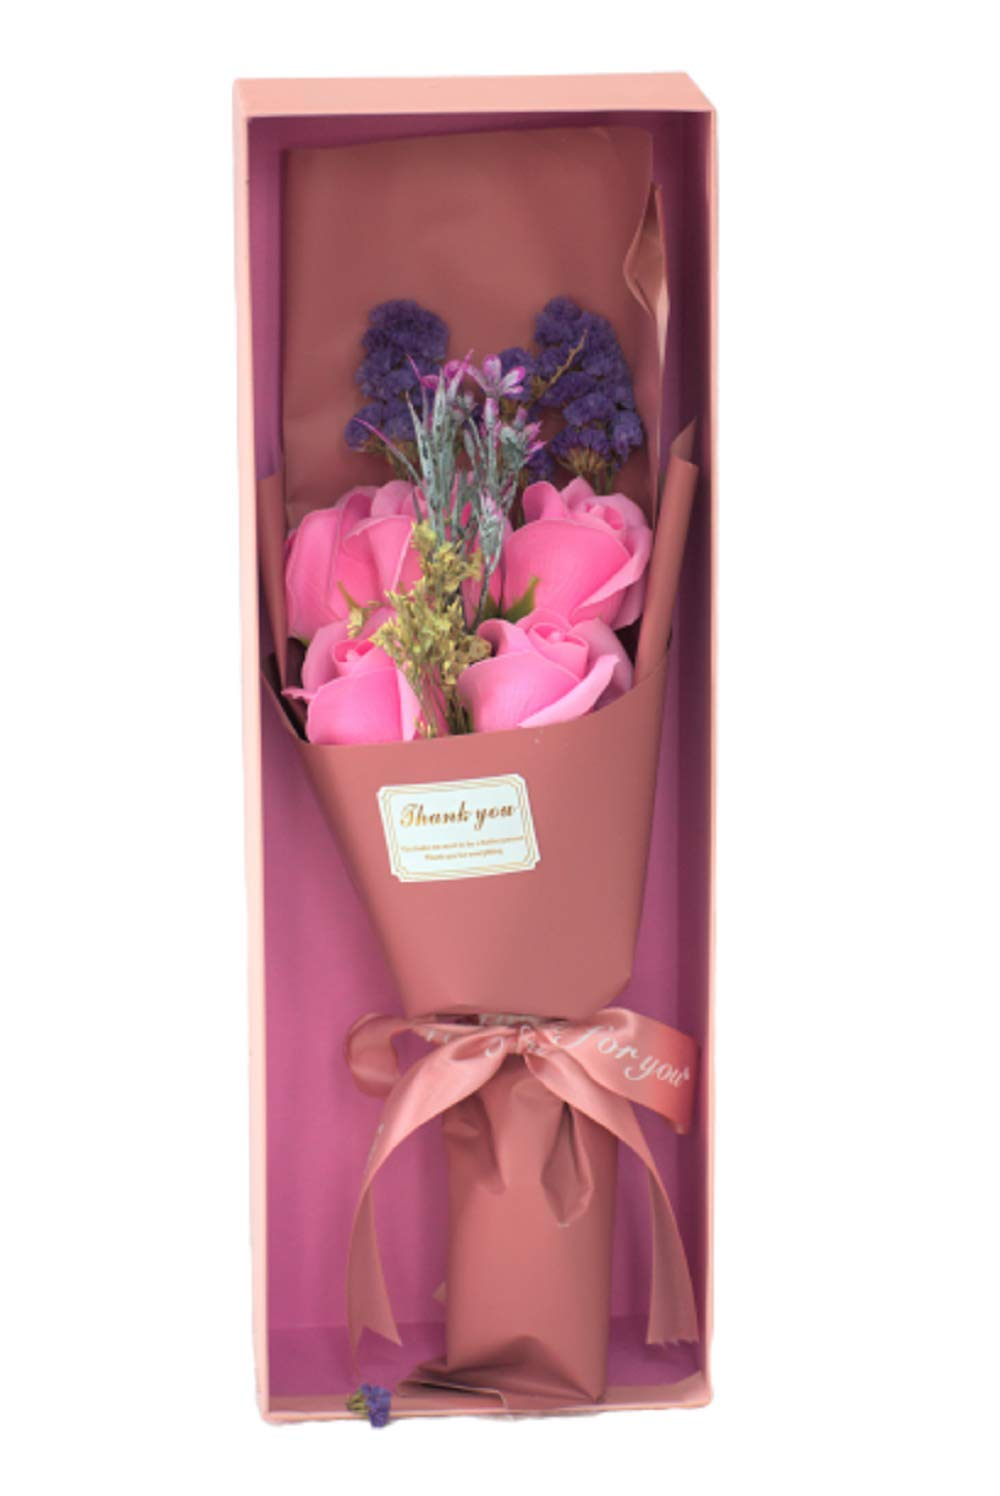 Buy Tgm Artificial Flower Bouquet For Gift Valentine Gifts For Girlfriend Girls Boyfriend Boys Husband Wife Best Birthday Gifts Online Pink Online At Low Prices In India Amazon In